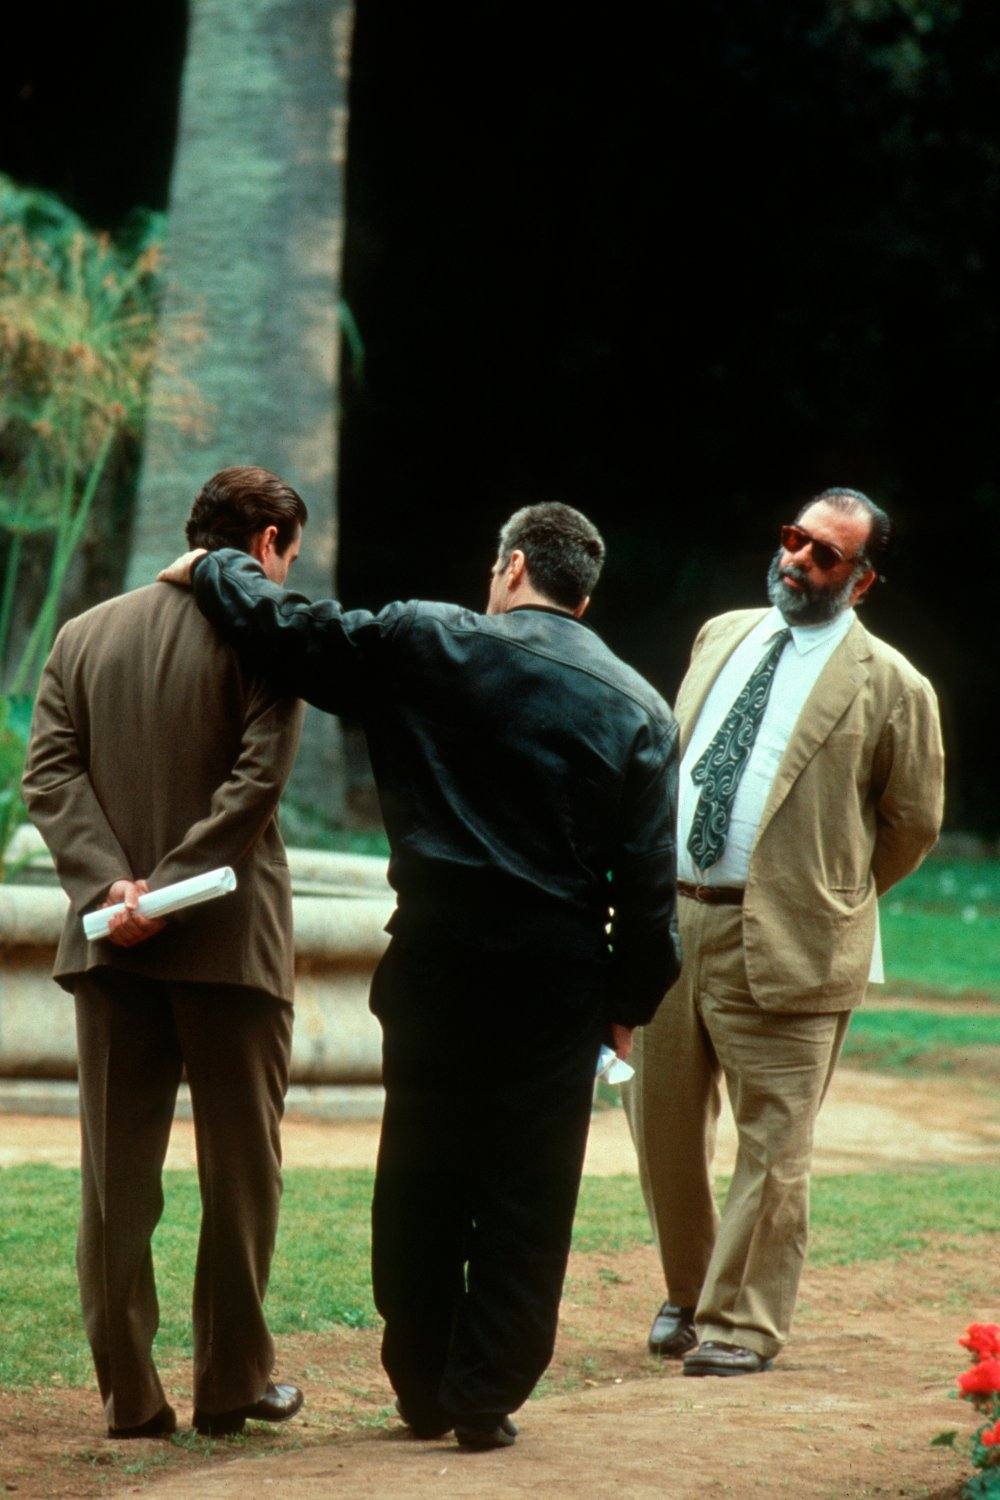 Al Pacino, Andy Garcia and Francis Ford Coppola on location for The Godfather Part III (1990)